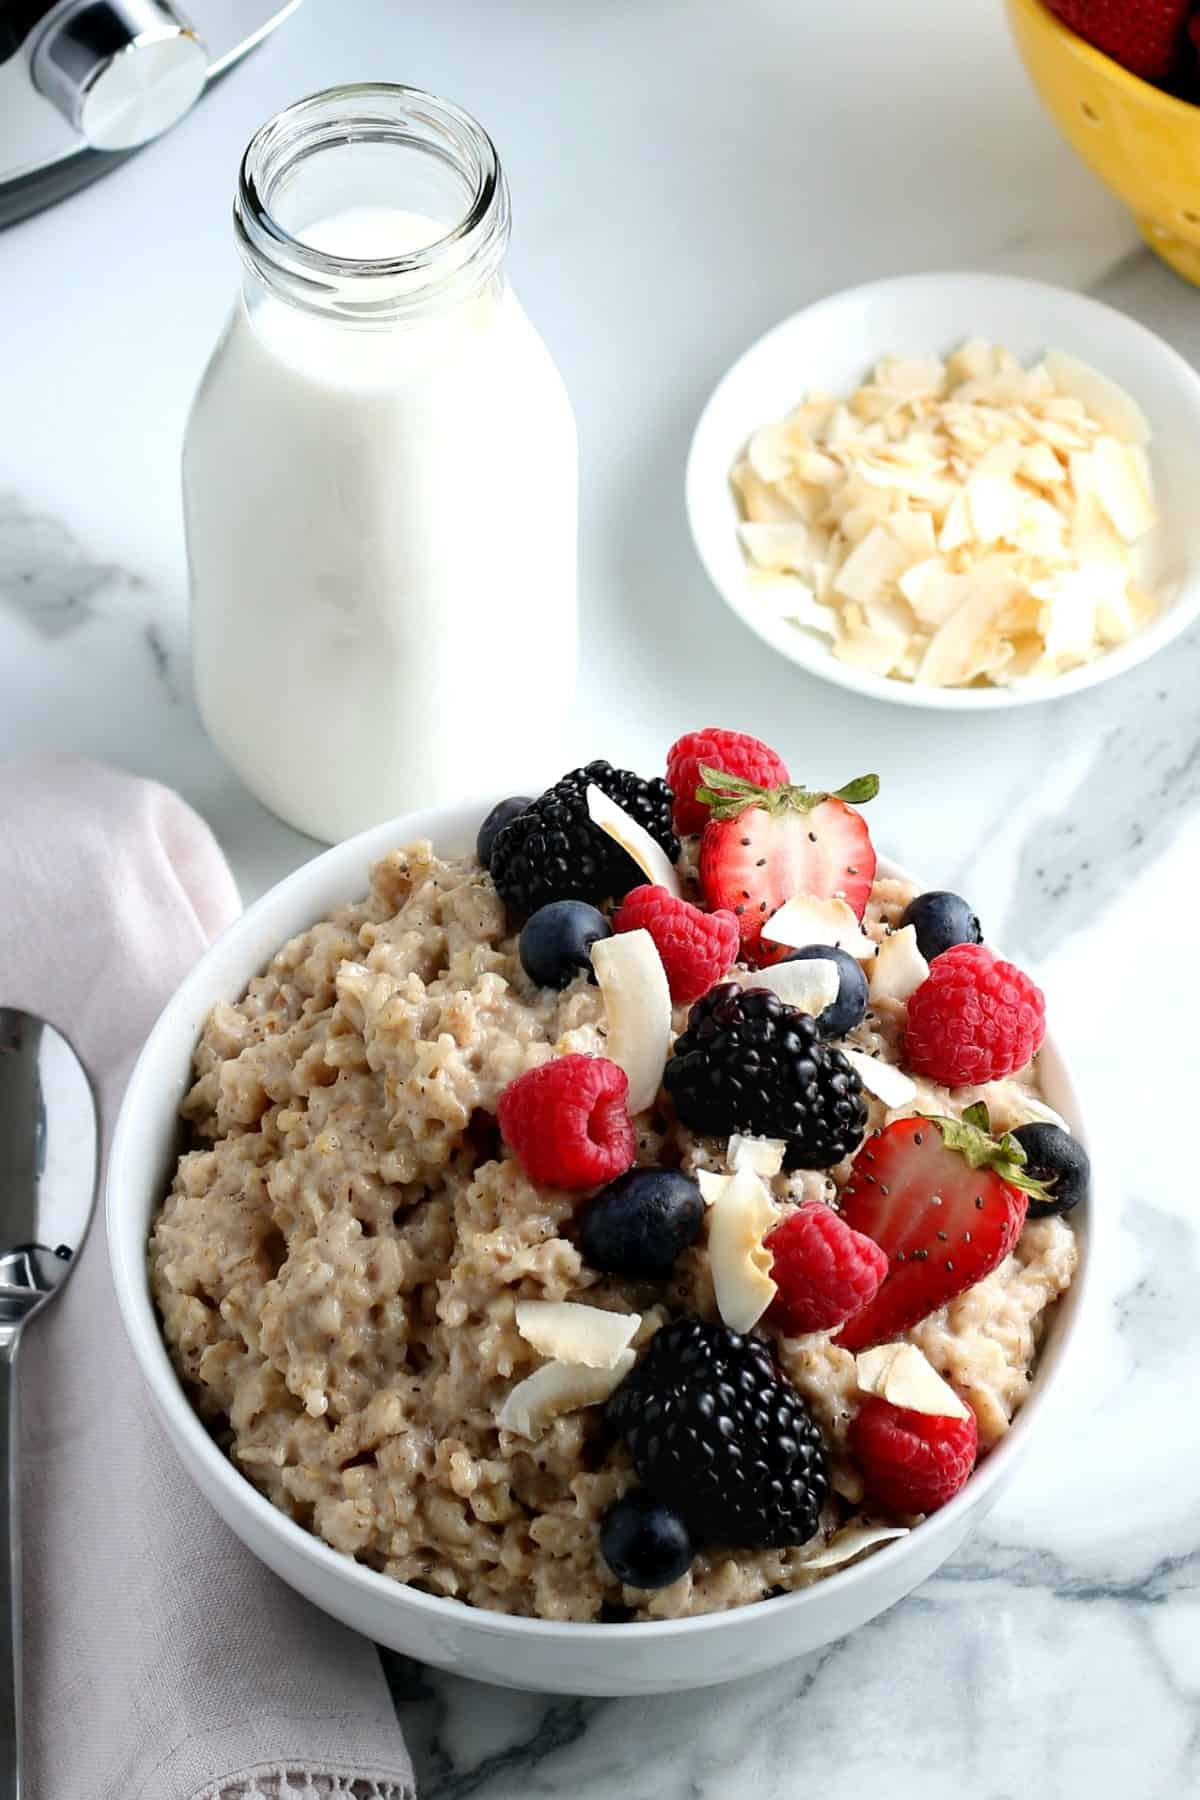 A centered white bowl filled with breakfast and berries with dairy-free milk and coconut on the side.